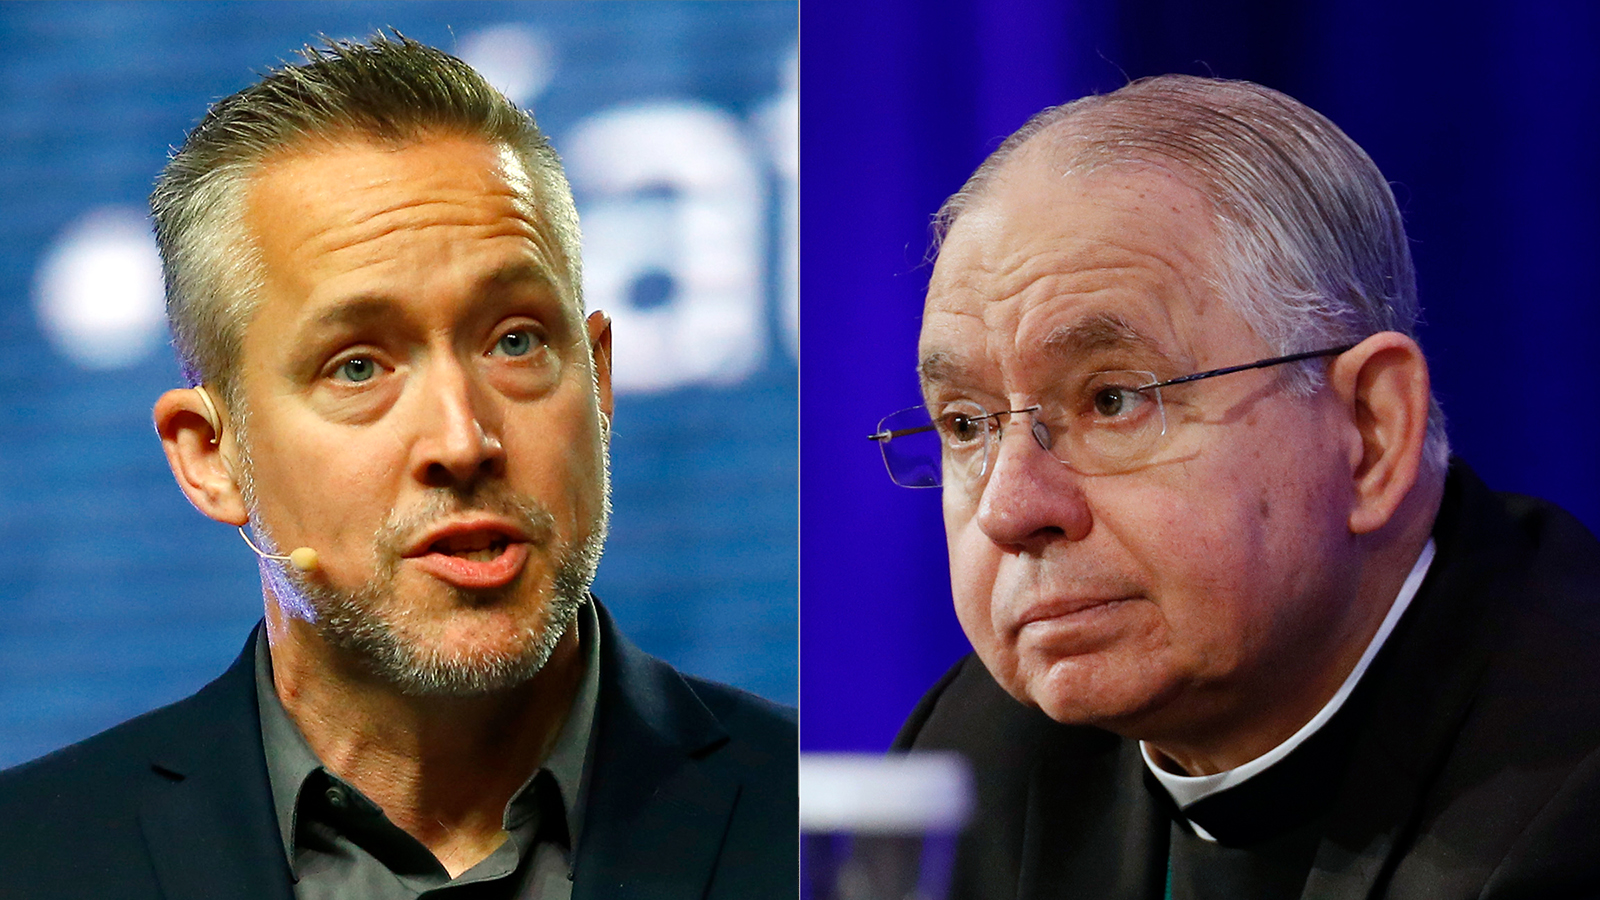 Outgoing Southern Baptist Convention President J.D. Greear, left, and USCCB President Archbishop Jose Gomez. (RNS Photo, left. AP Photo, right)